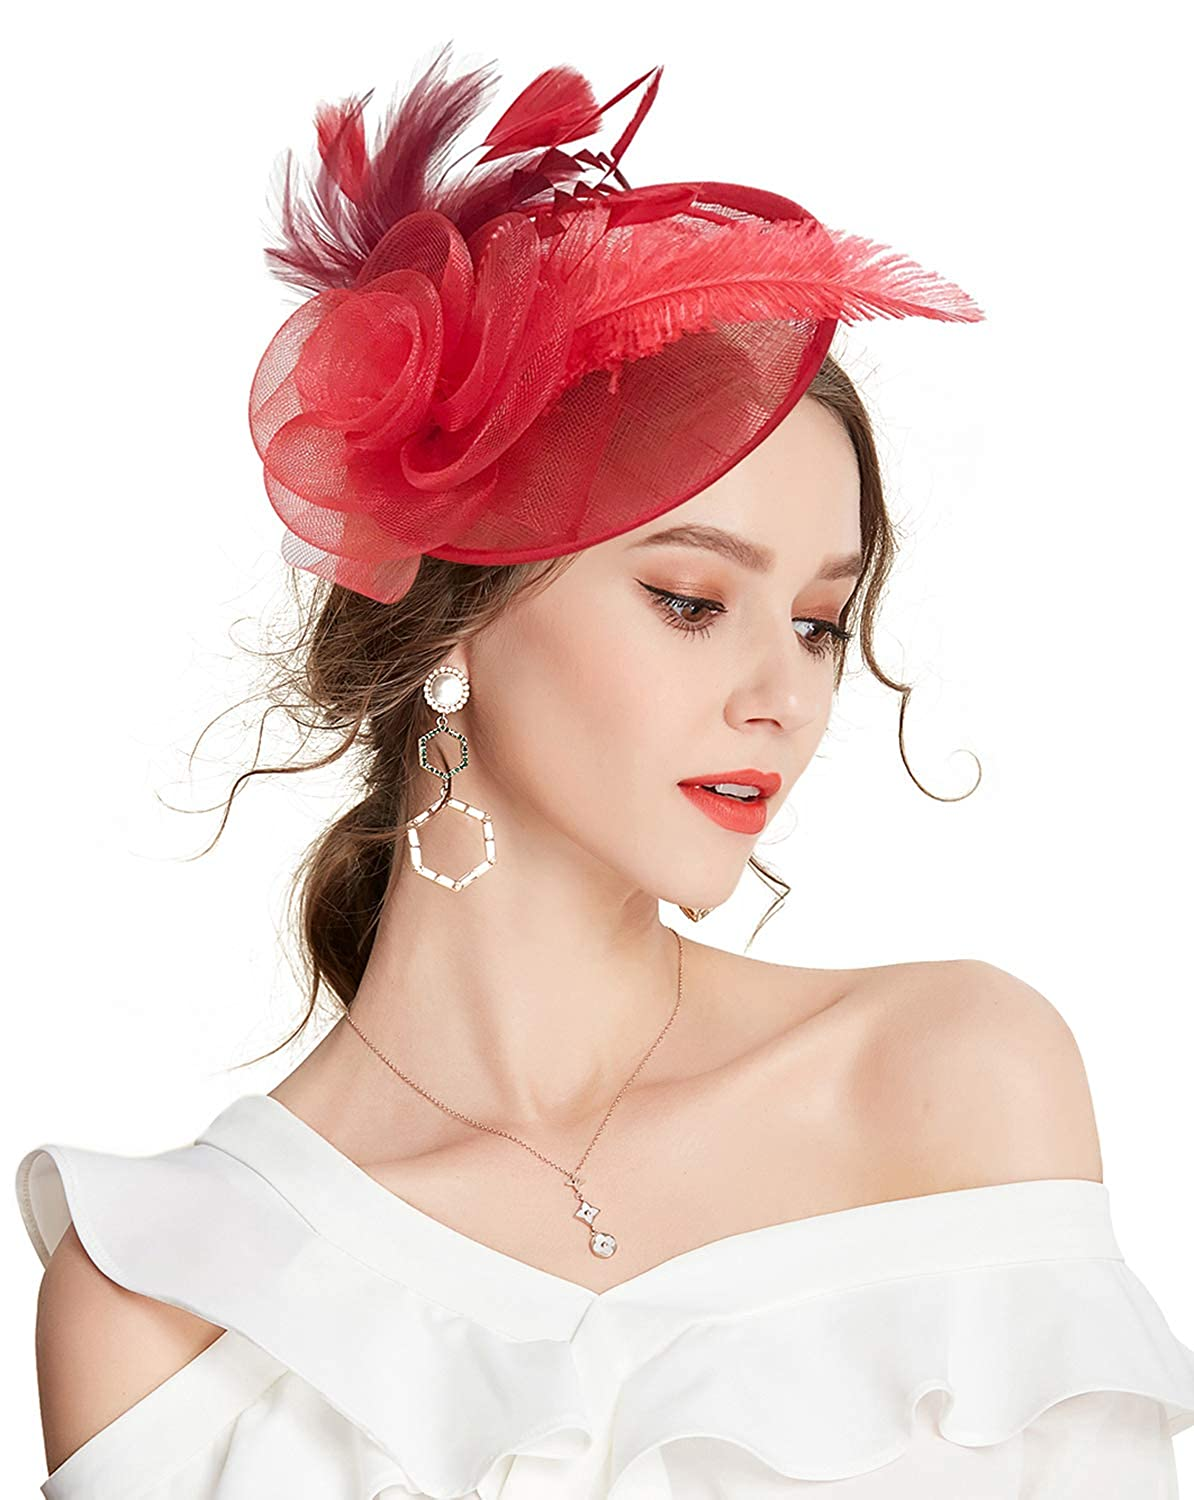 Z&X Sinamay Fascinator with Headband Clip Mesh Flower Feather Cocktail Pillbox Hat